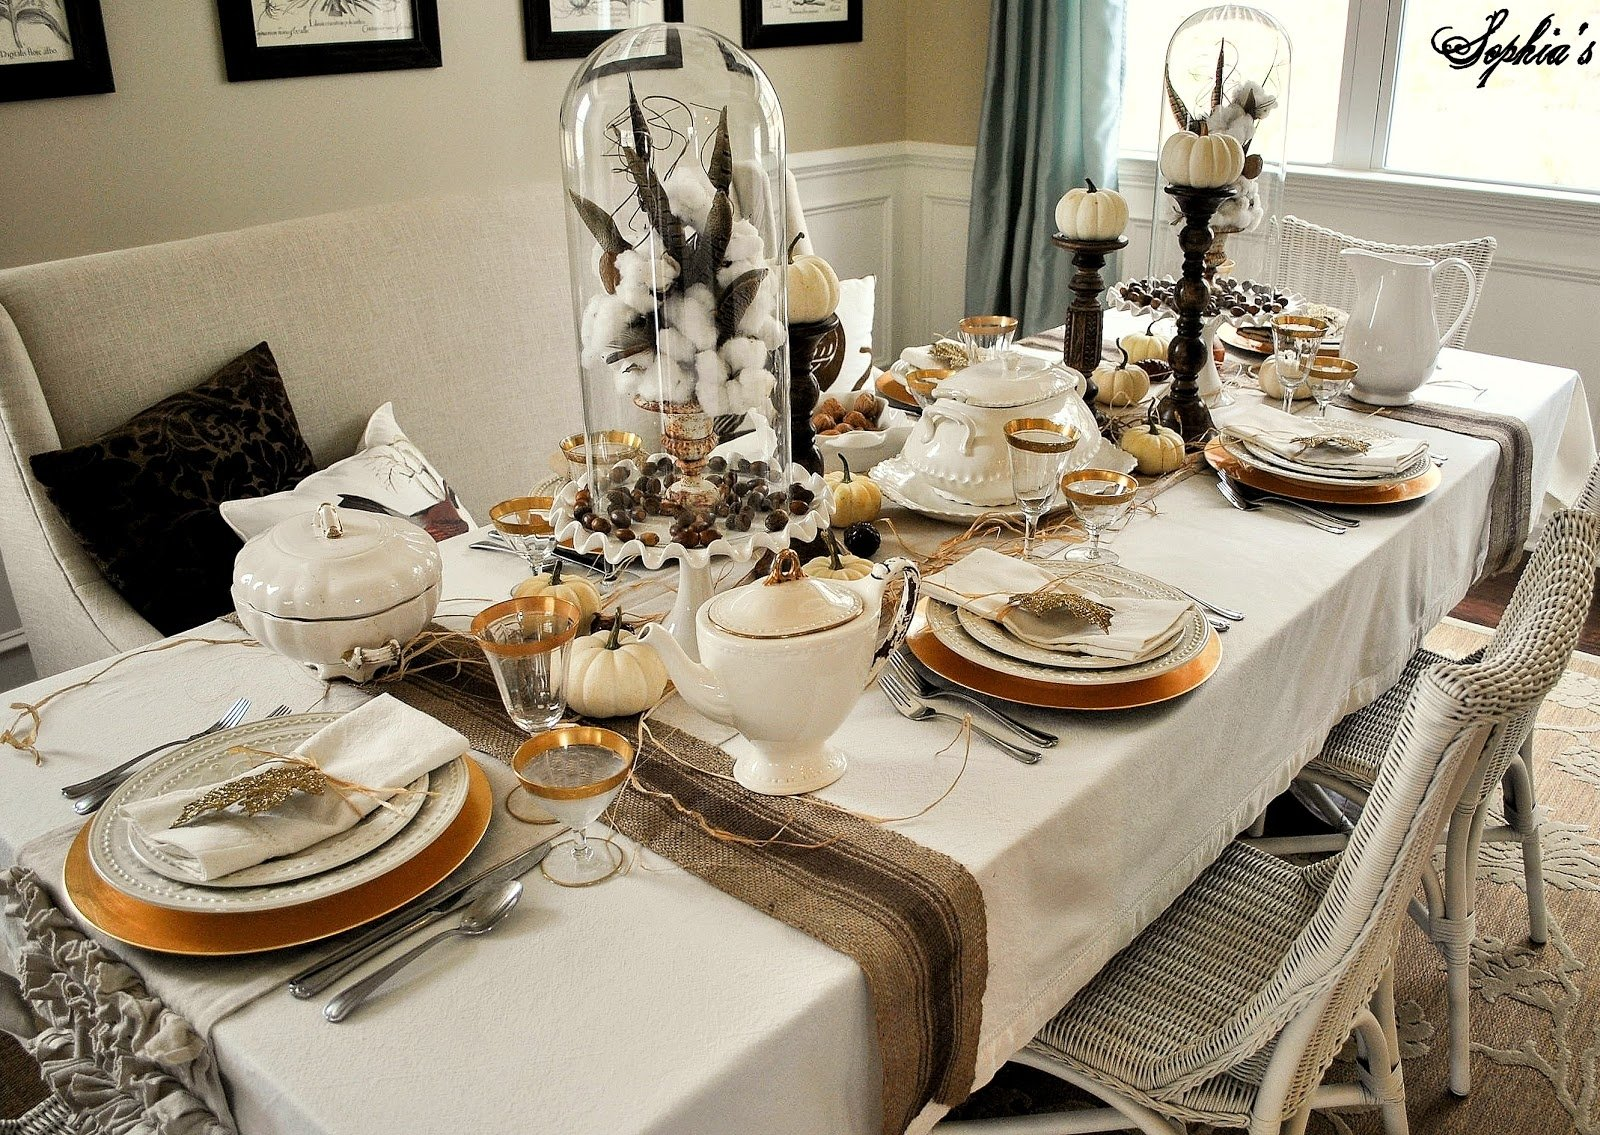 10 Attractive Table Setting Ideas For Thanksgiving sophias thanksgiving table setting tablesetting ideas 2021